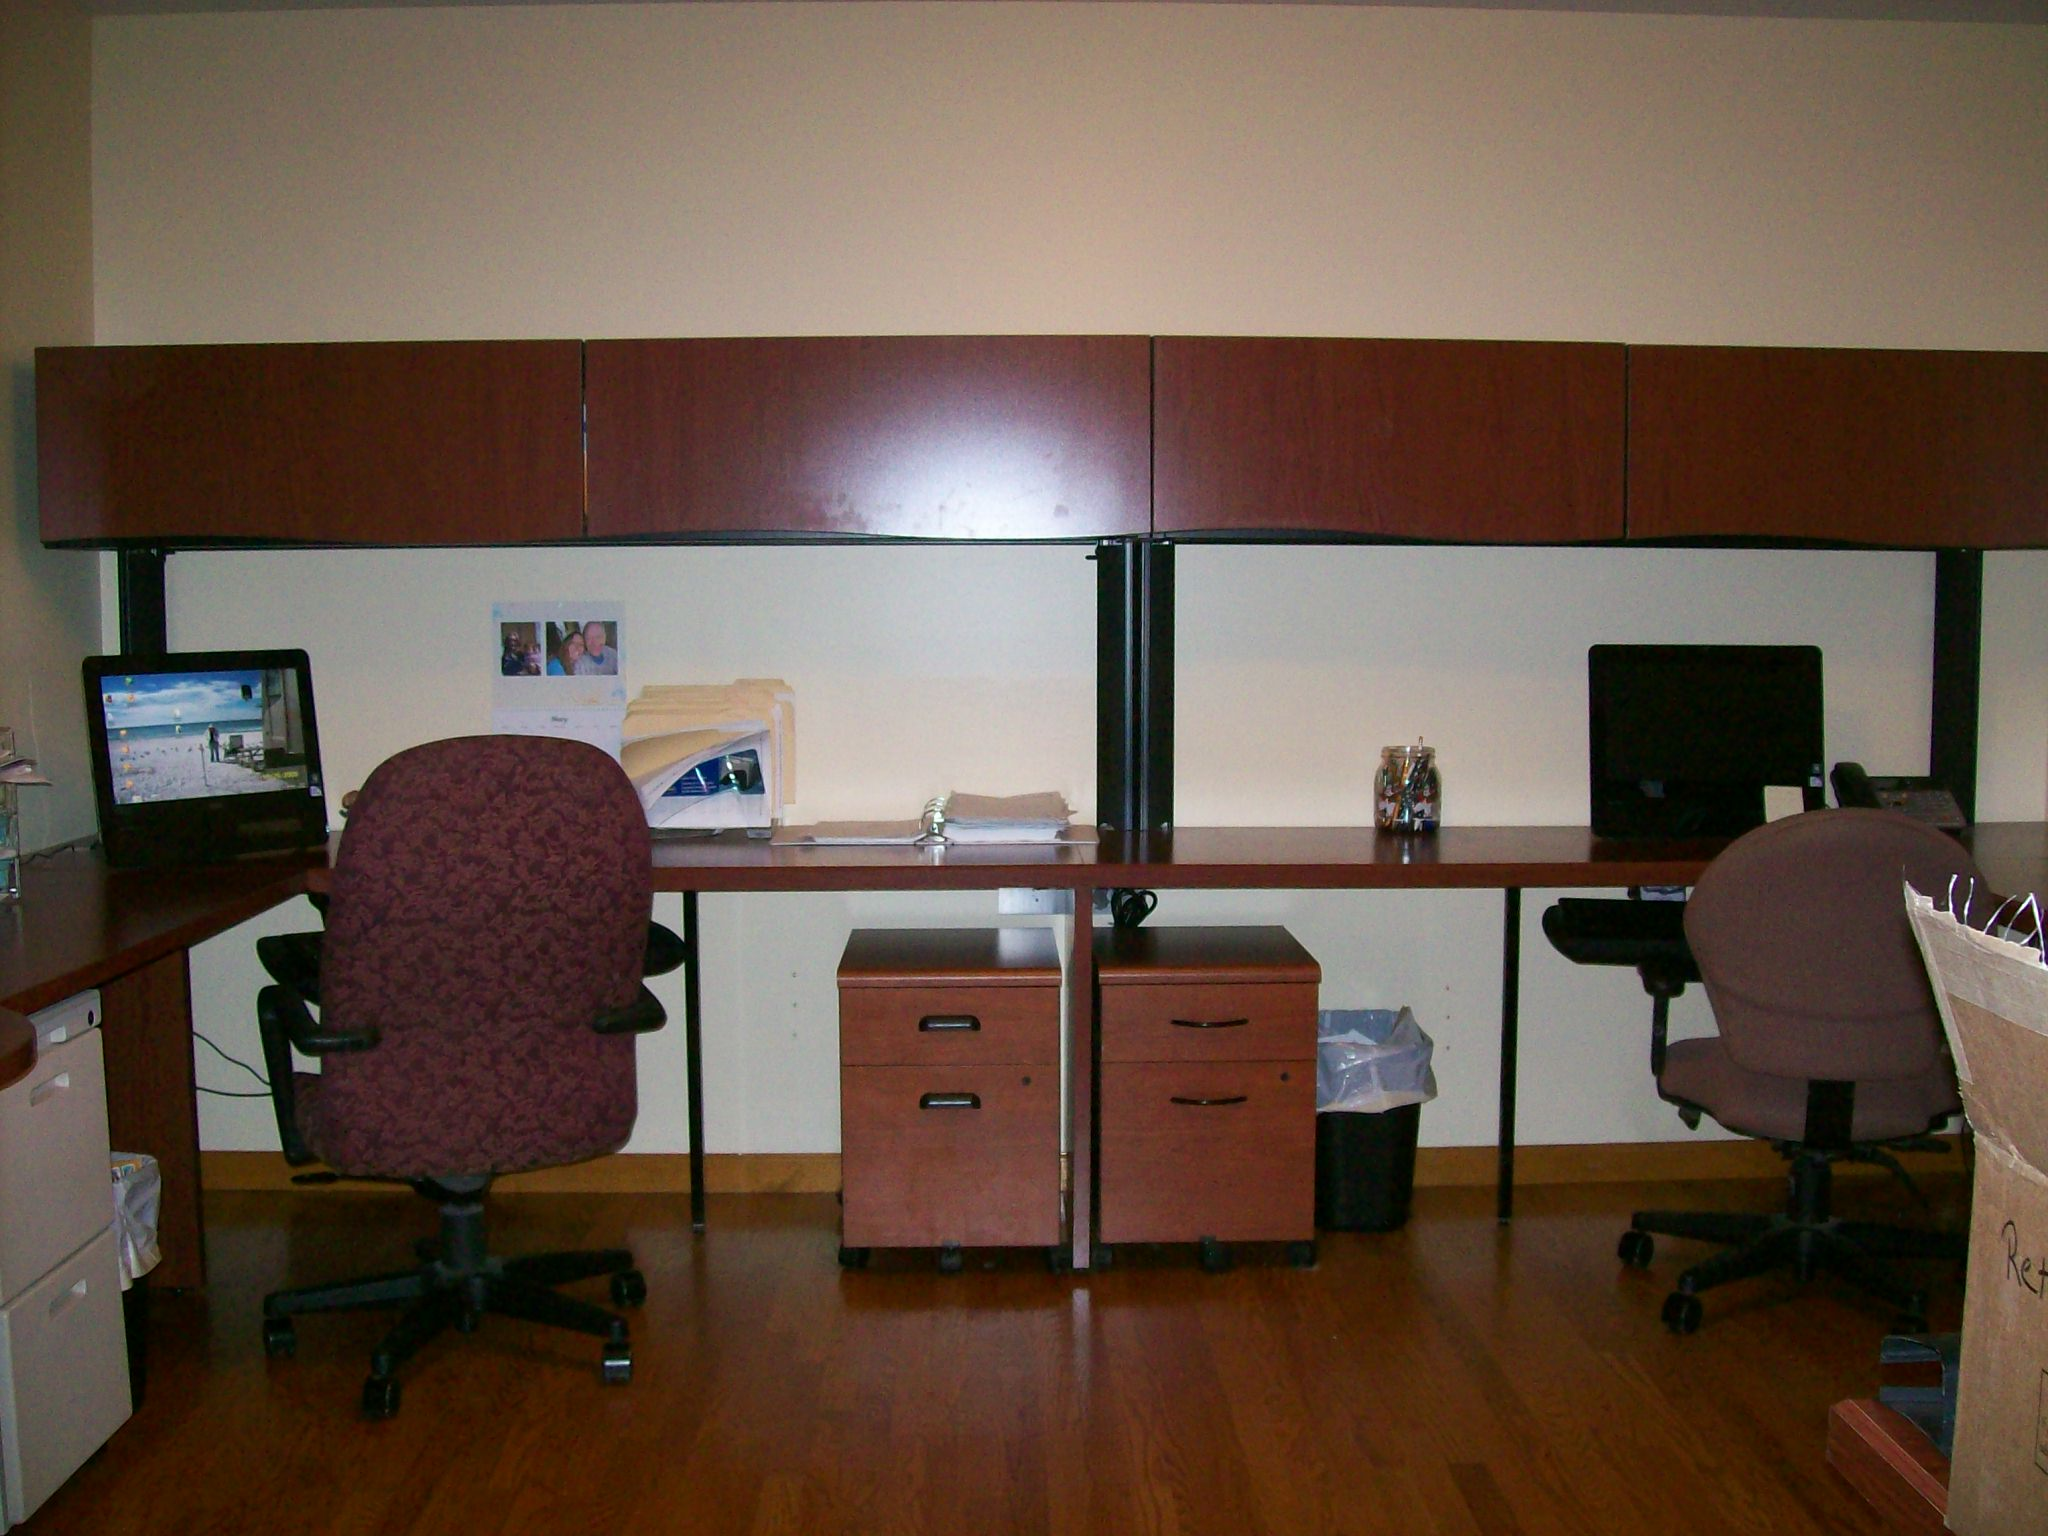 office work surfaces. Services For Custom Work Surfaces And Storage Any Needs Your Office Or Facility May Have. From Cubicles To Workspaces Cabinetry, H